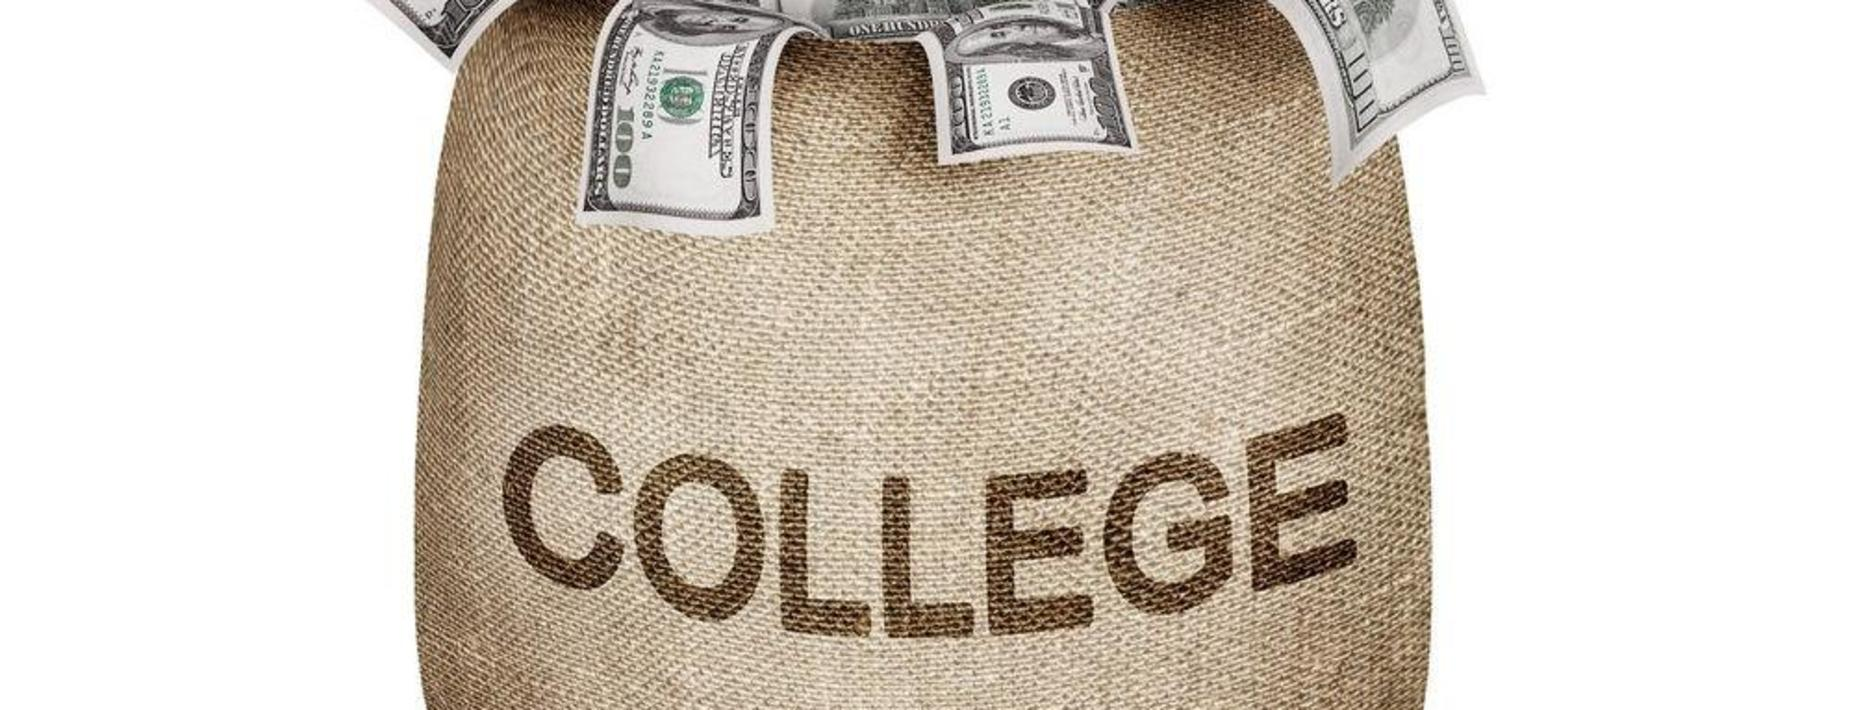 College Tuitions